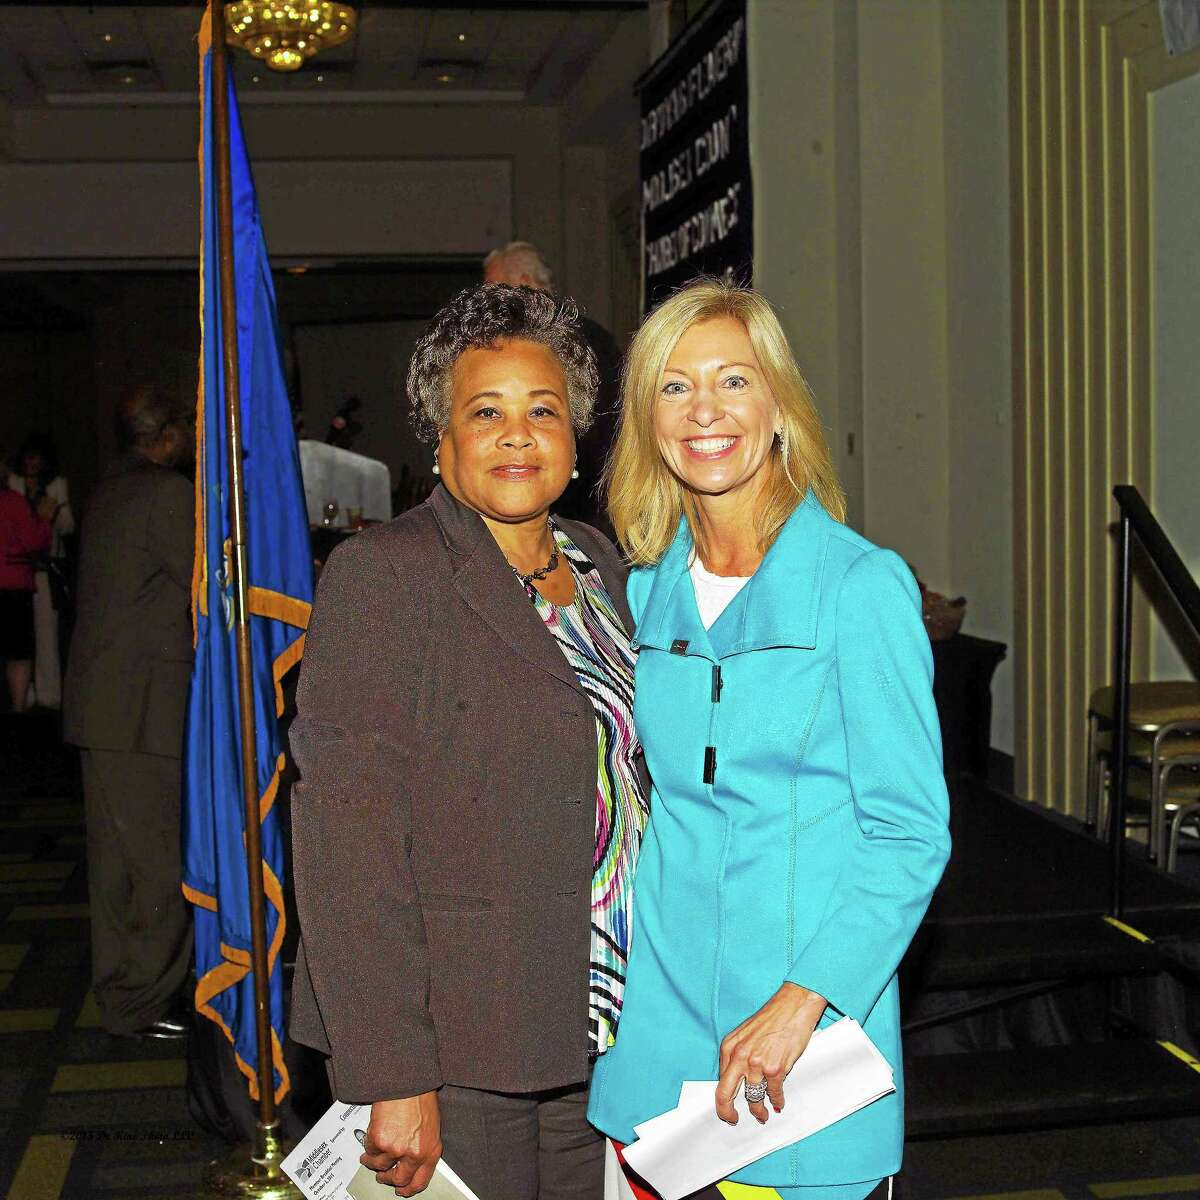 Aetna President Karen S. Lynch spoke at the Middlesex County Chamber of Commerce September breakfast meeting. She is shown, at right, with Faith Jackson, director of the City of Middletown Human Relations Department, left.